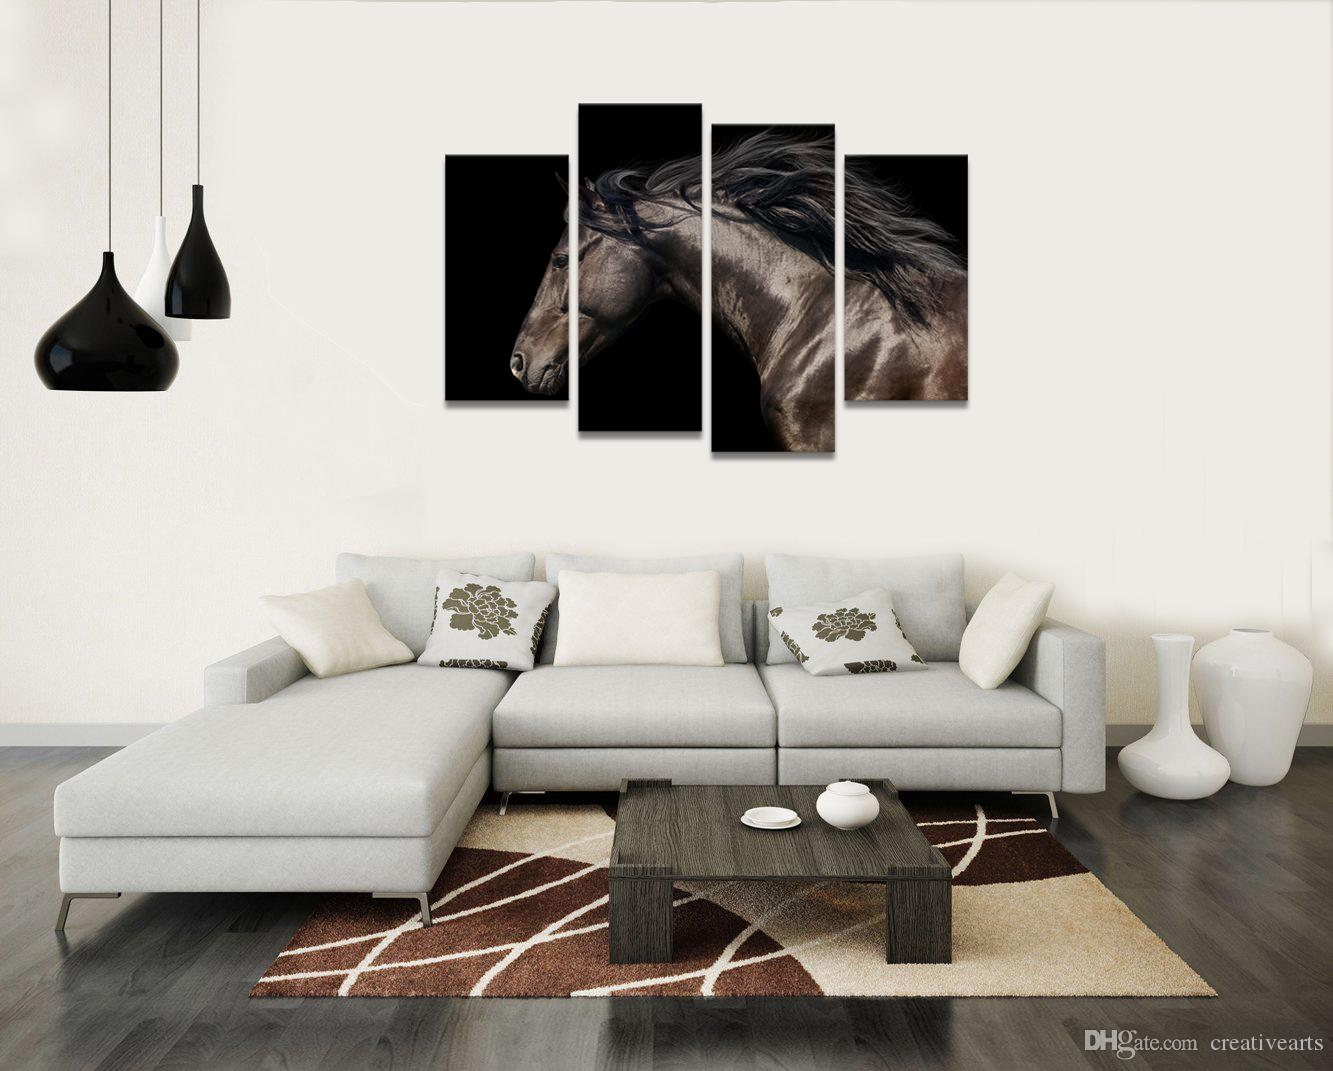 Black Horse Painting Photo Canvas Art Print Animal Canvas Printing for Home Wall Decor/SJMT1851